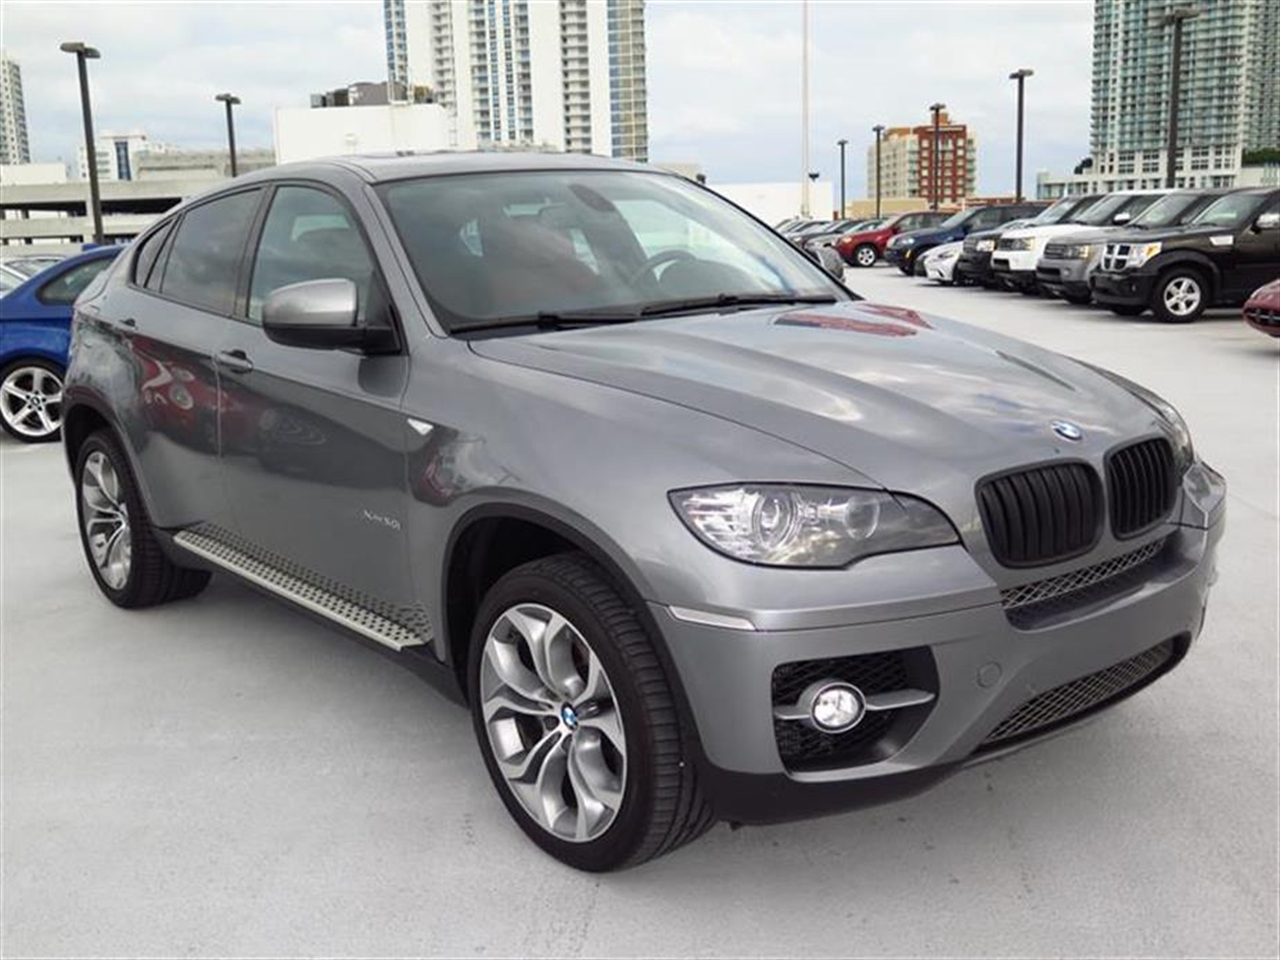 2012 BMW X6 AWD 4dr 50i 23629 miles 20-way pwr multi-contour front bucket seats include standard 1